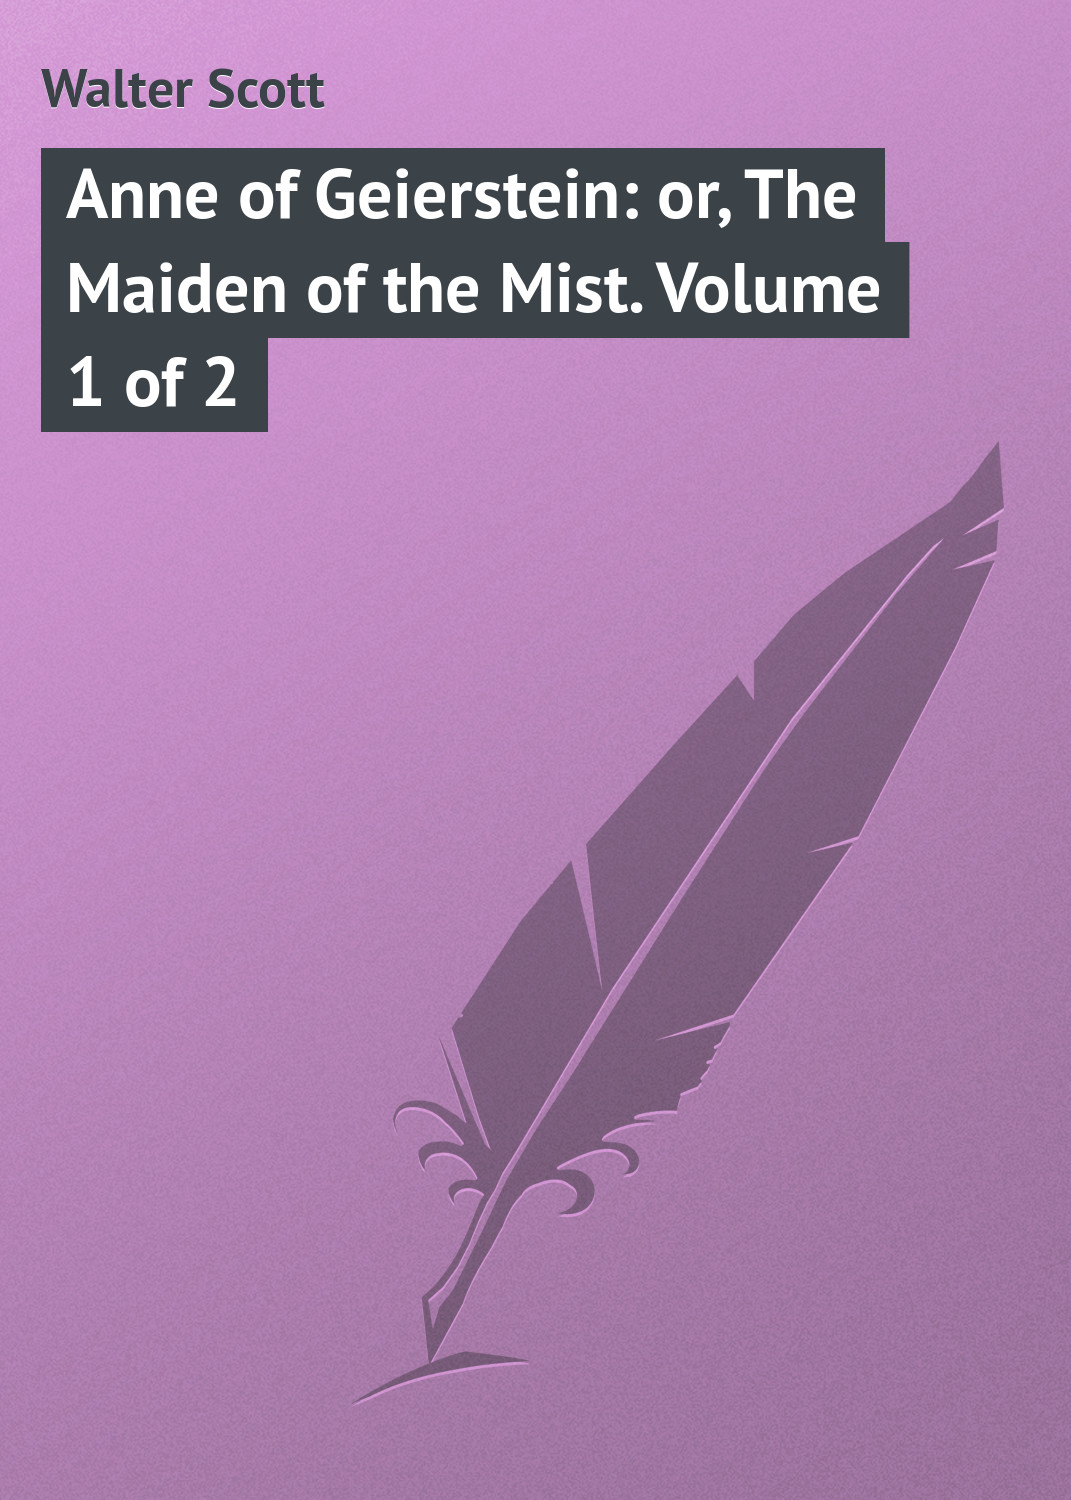 Walter Scott Anne of Geierstein: or, The Maiden of the Mist. Volume 1 of 2